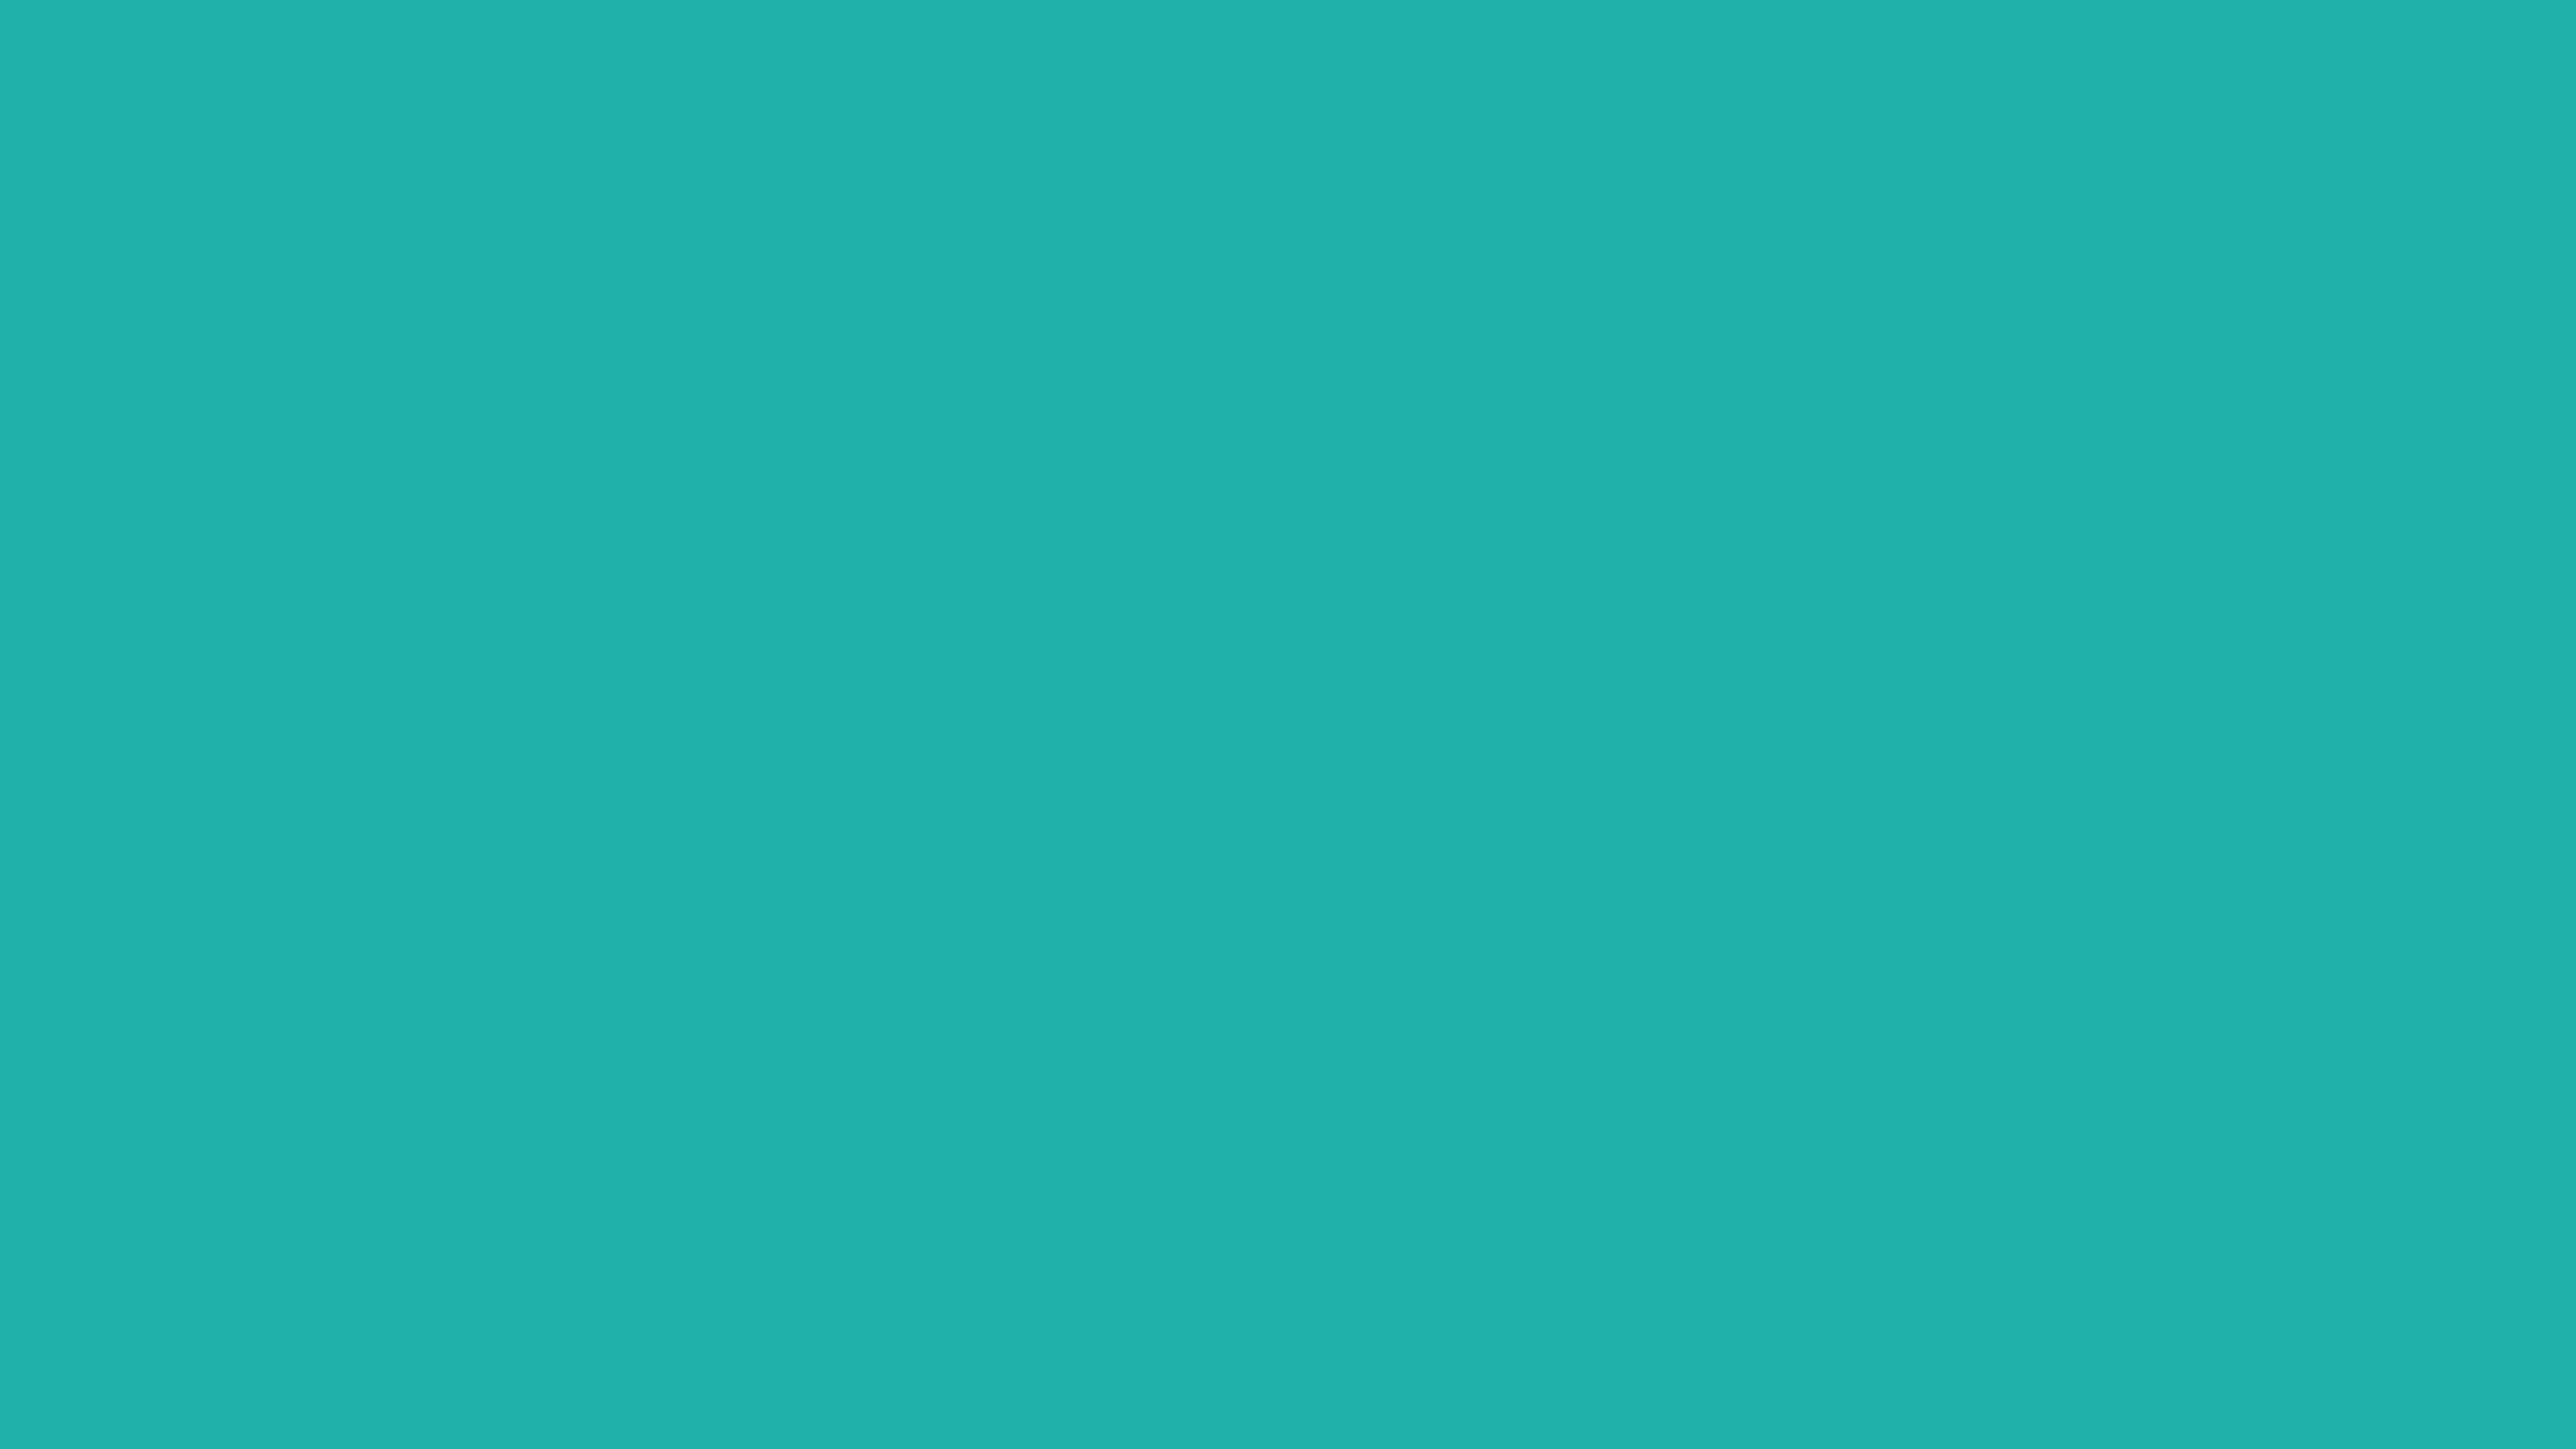 7680x4320 Light Sea Green Solid Color Background